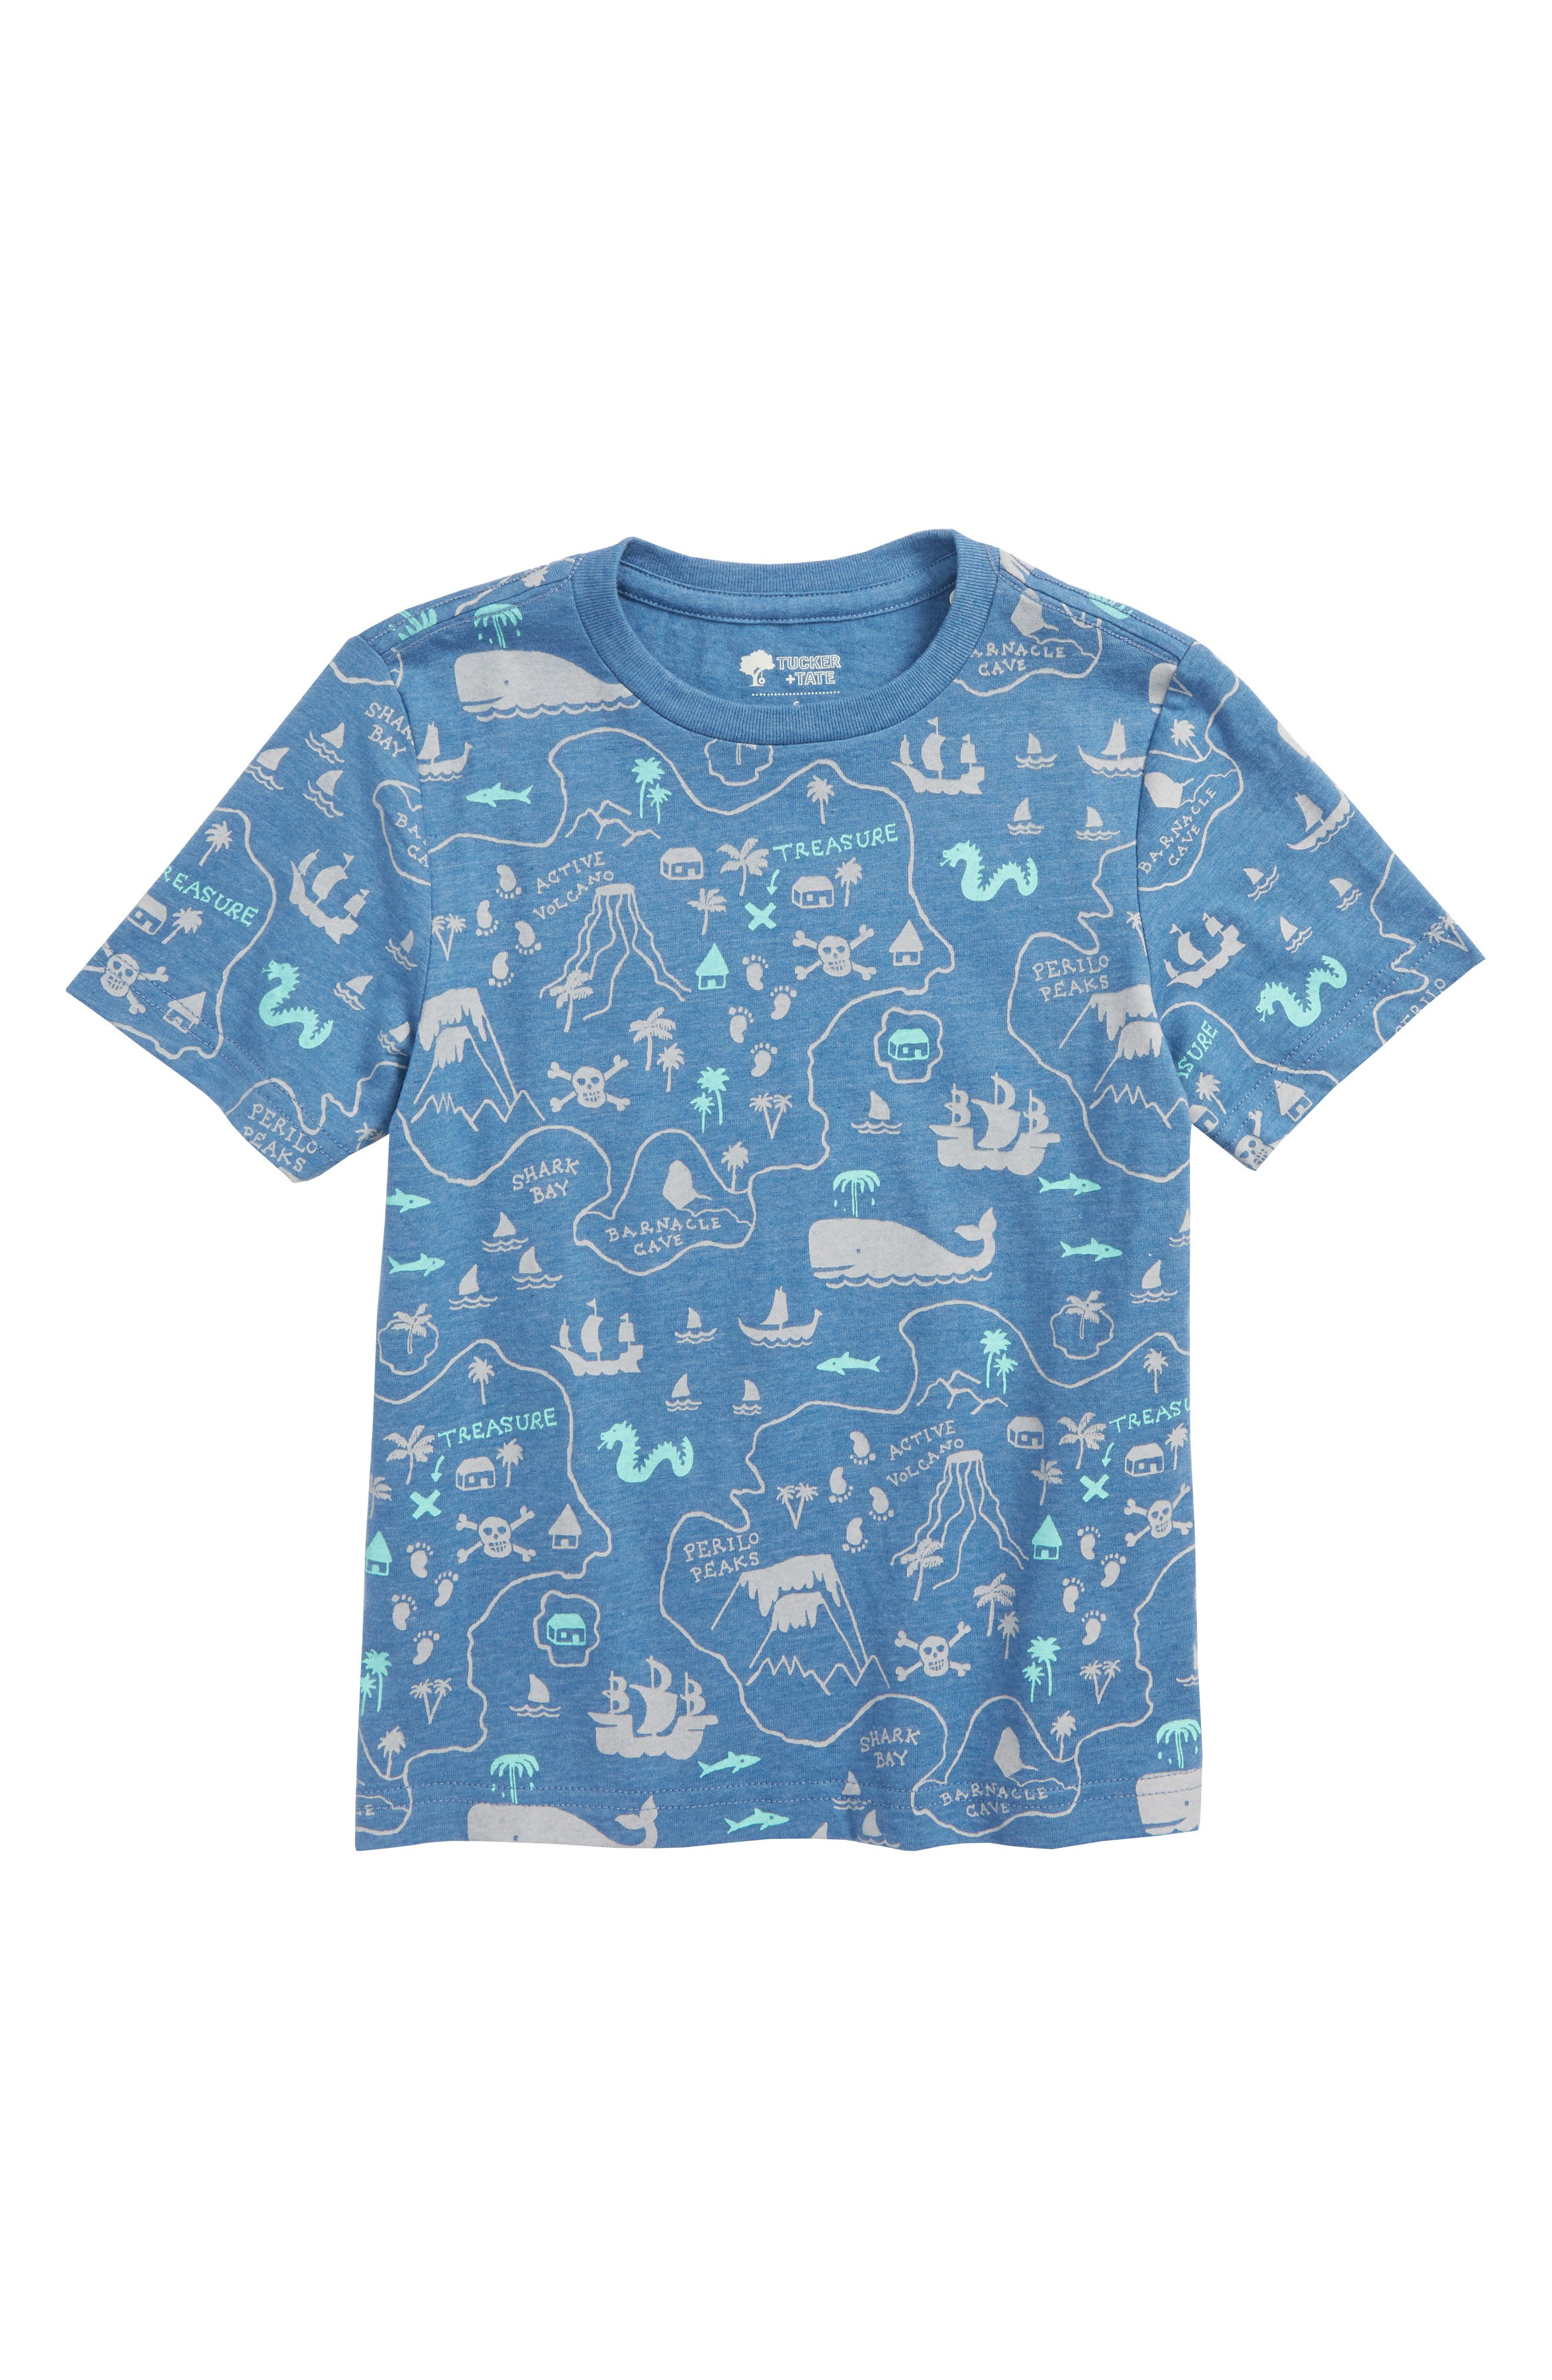 Main Image - Tucker + Tate Graphic T-Shirt (Toddler Boys & Little Boys)